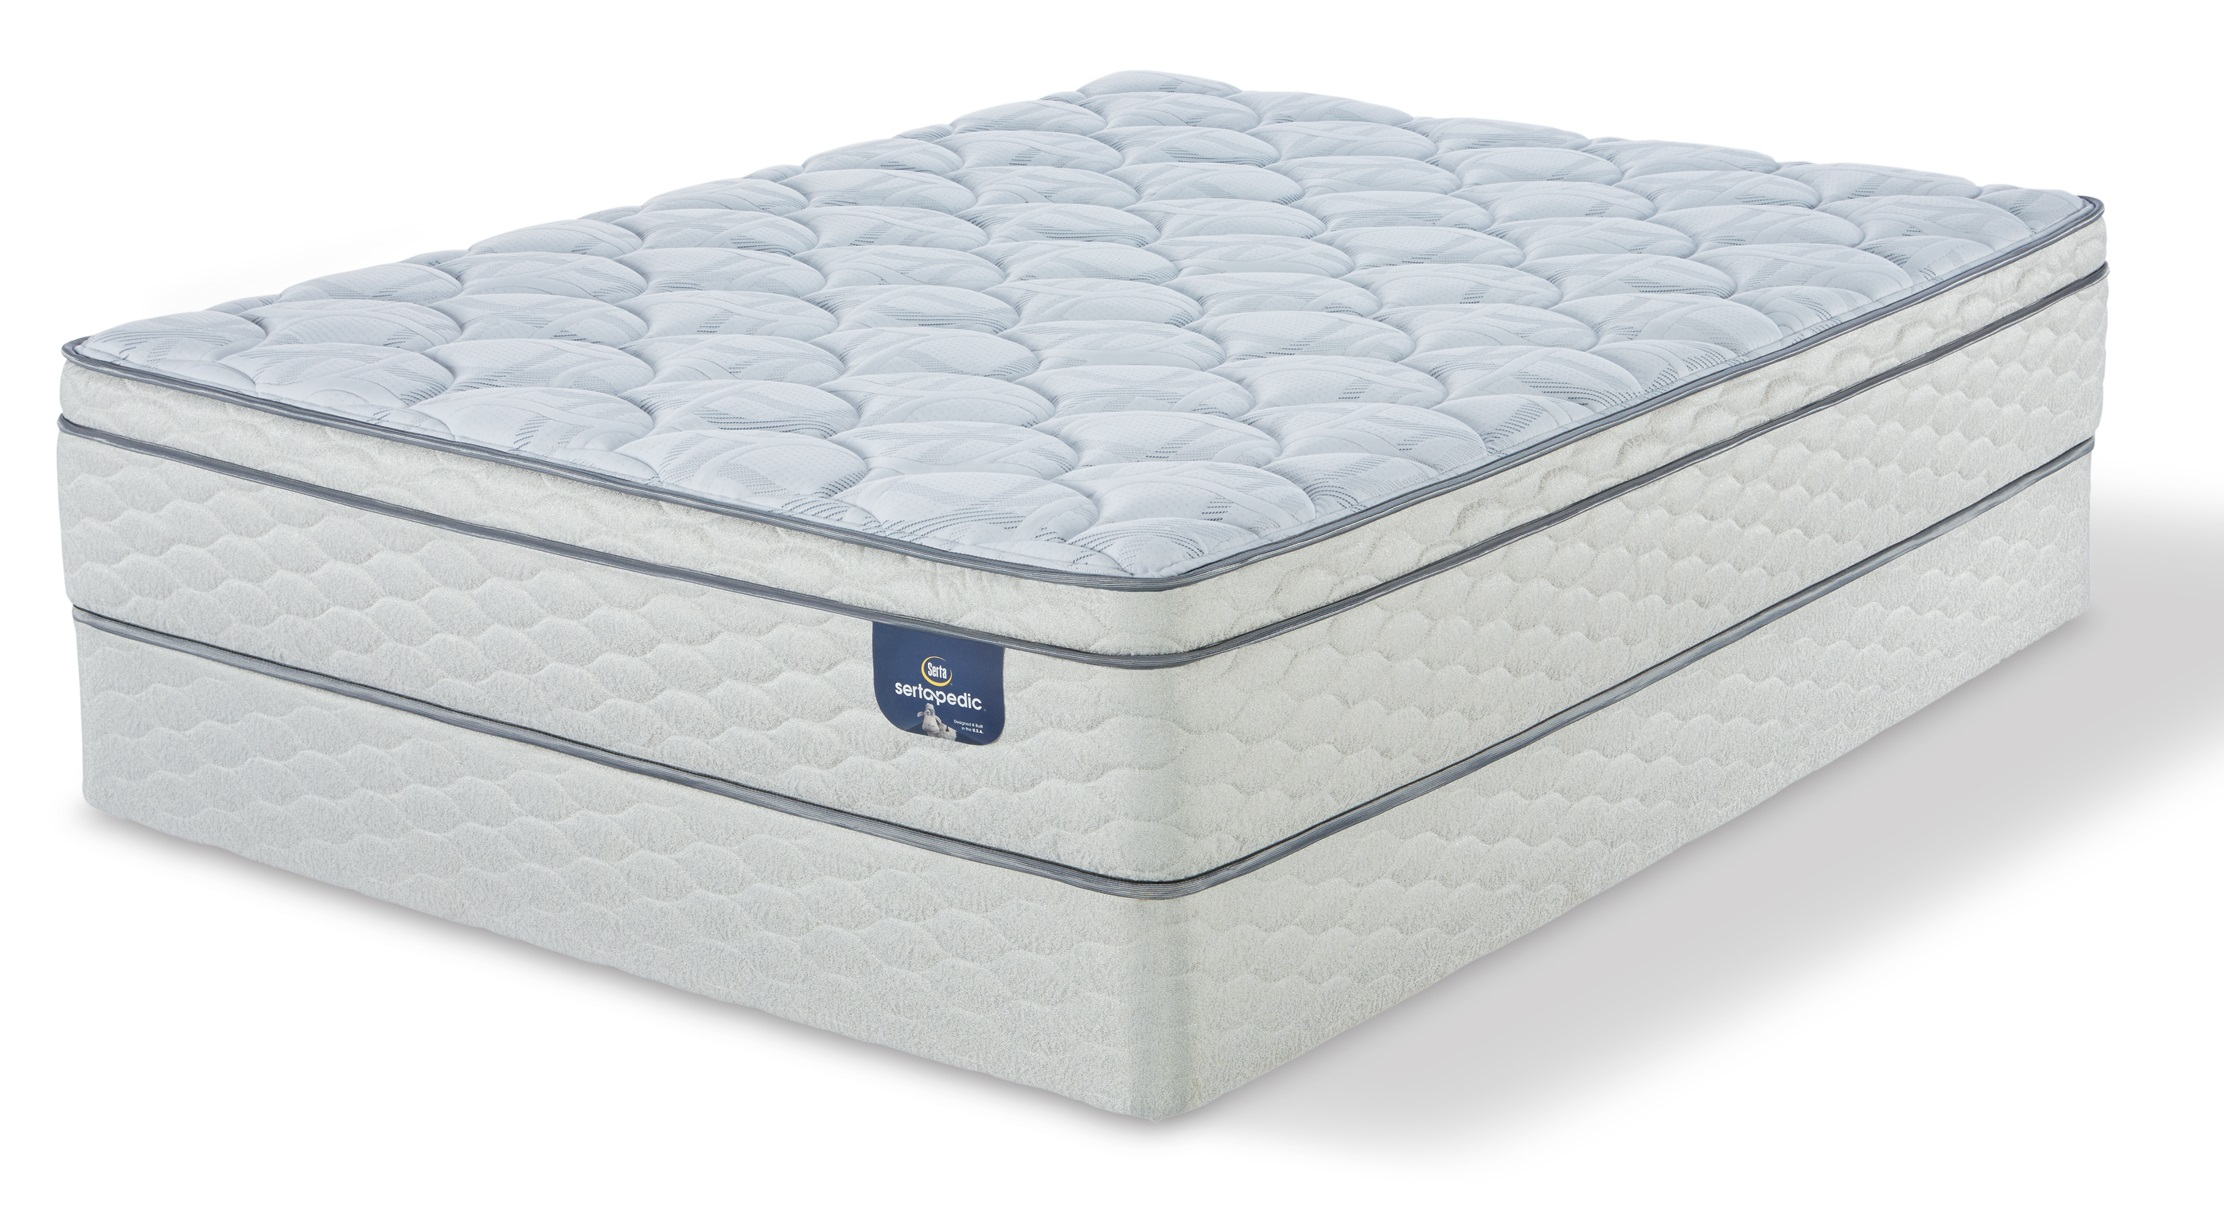 Beautiful twin mattress for sale inspiration home gallery image and wallpaper Twin mattress sales